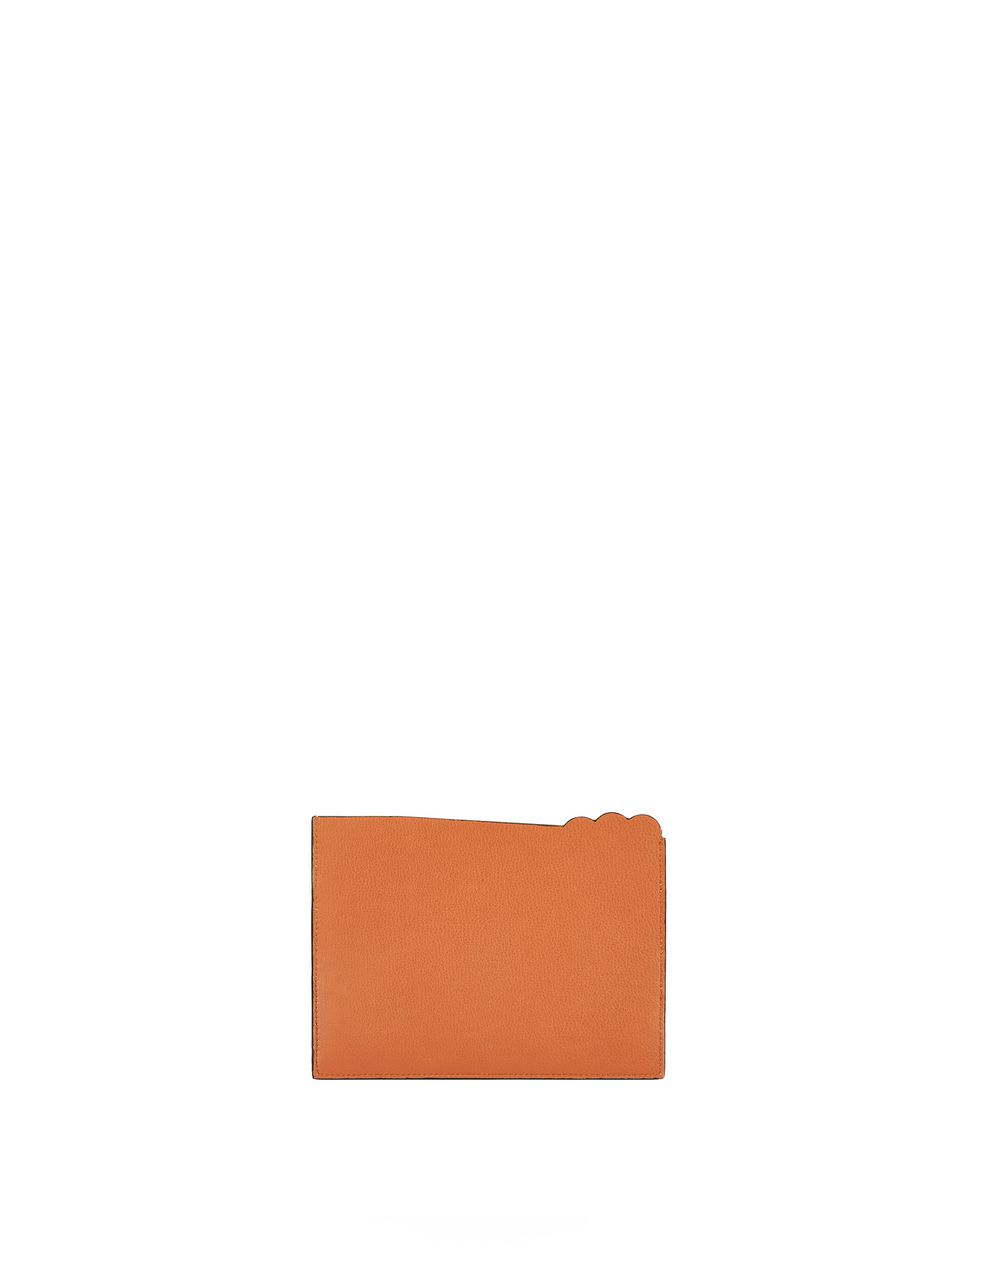 BABAR PRINT CARD HOLDER - Lanvin